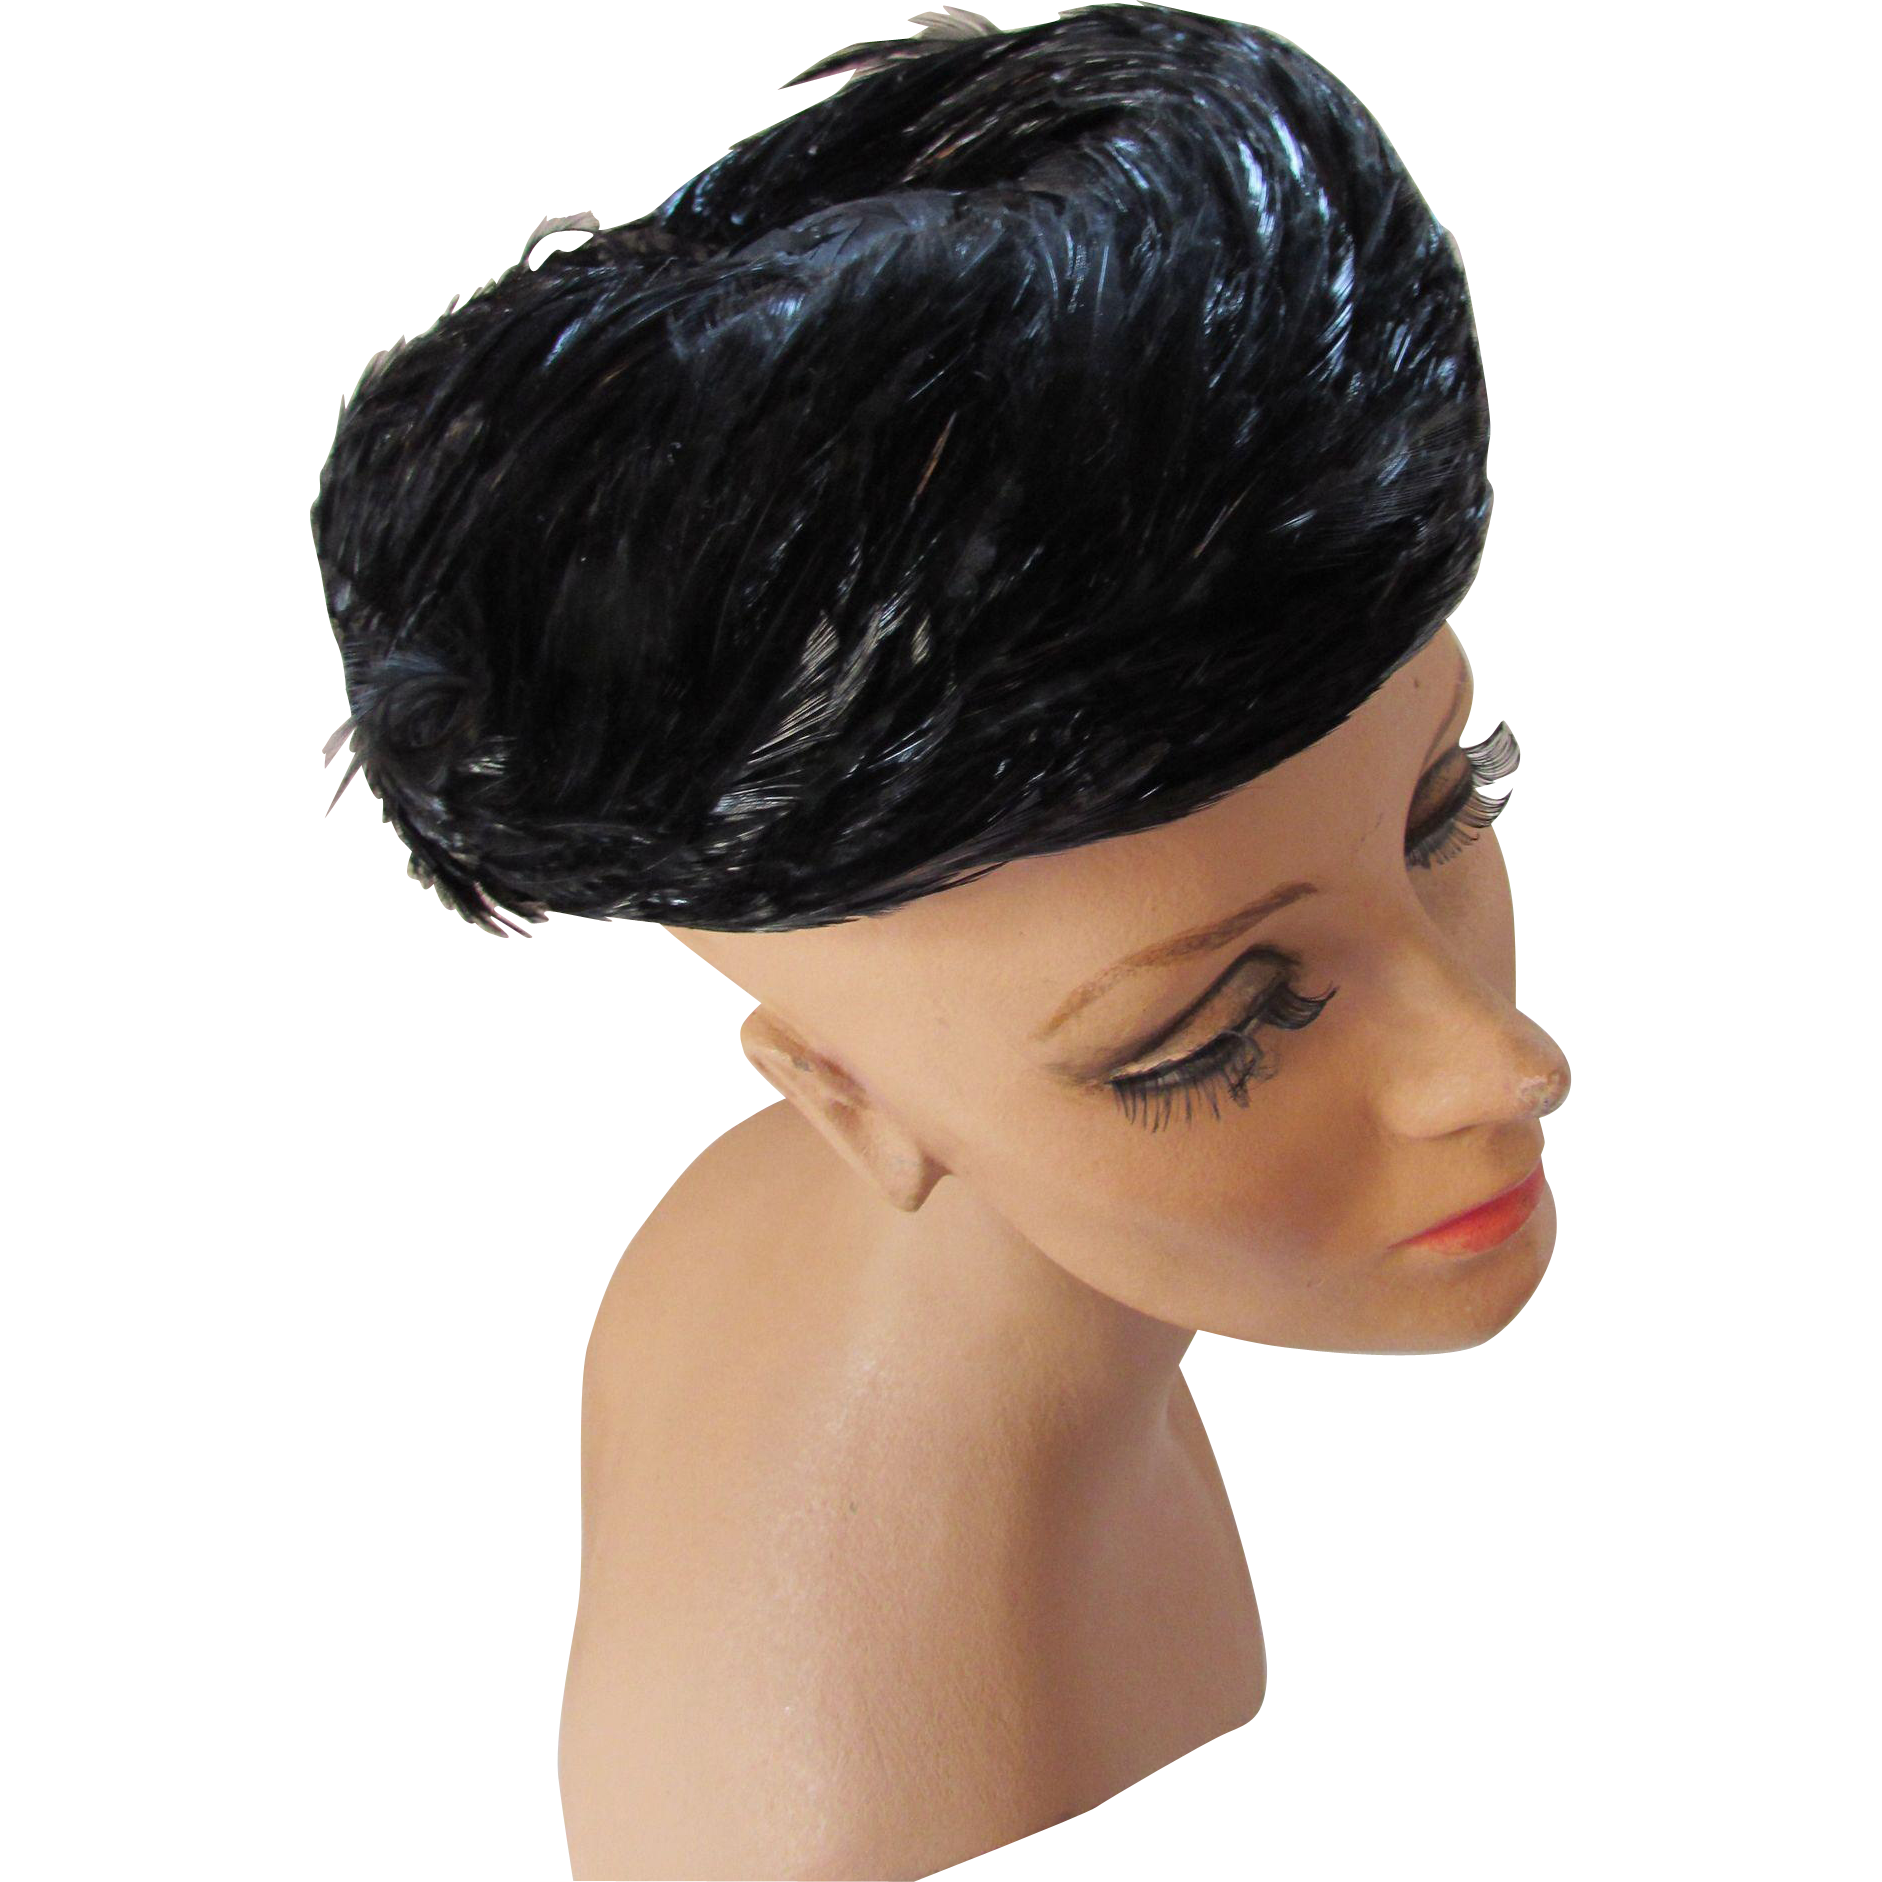 Mid-Century Hat in Black Swirled Feathers Pill Box Style Union Label